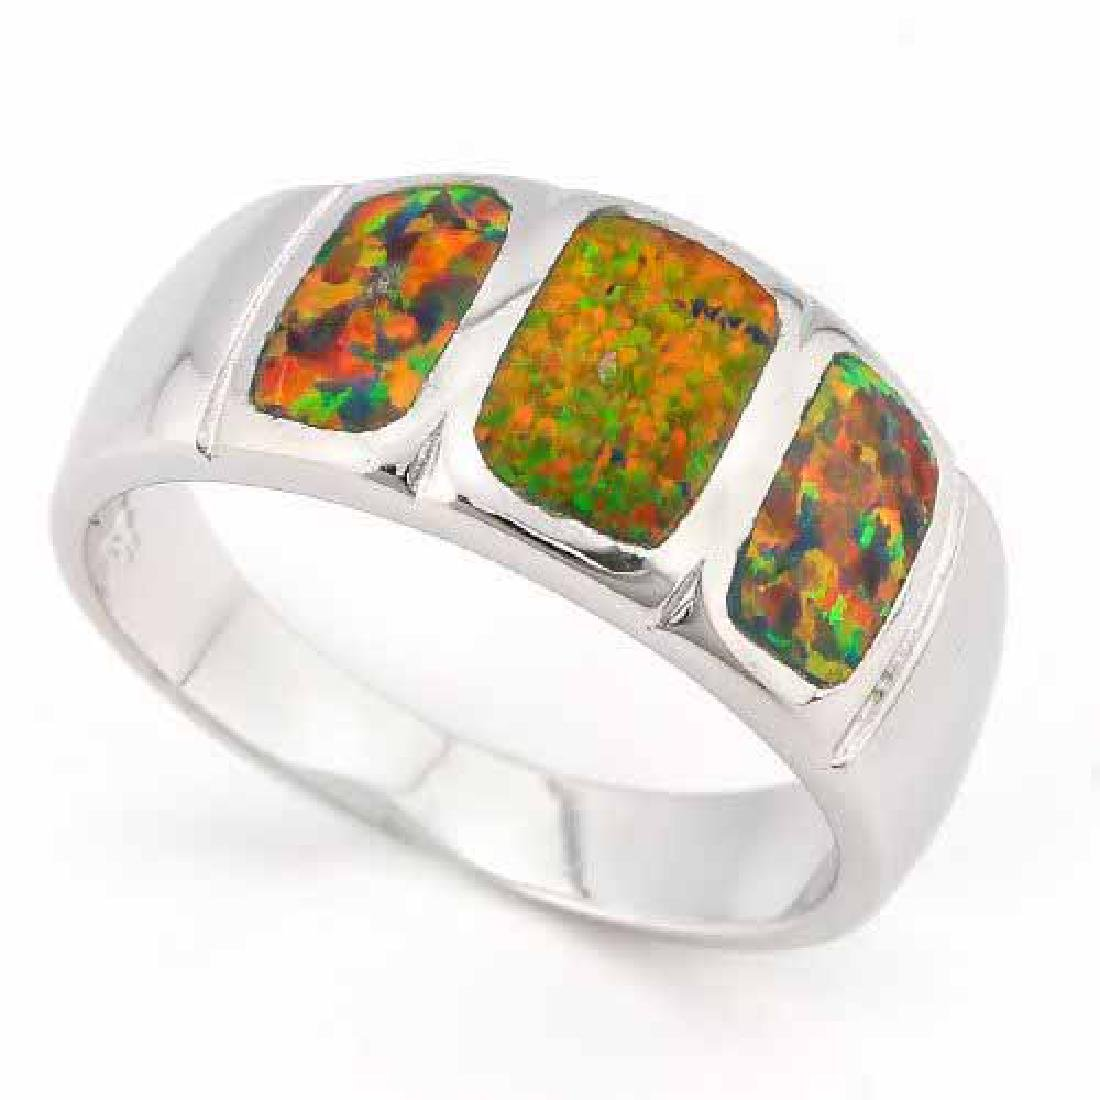 1 1/5 CARAT CREATED FIRE OPAL 925 STERLING SILVER RING